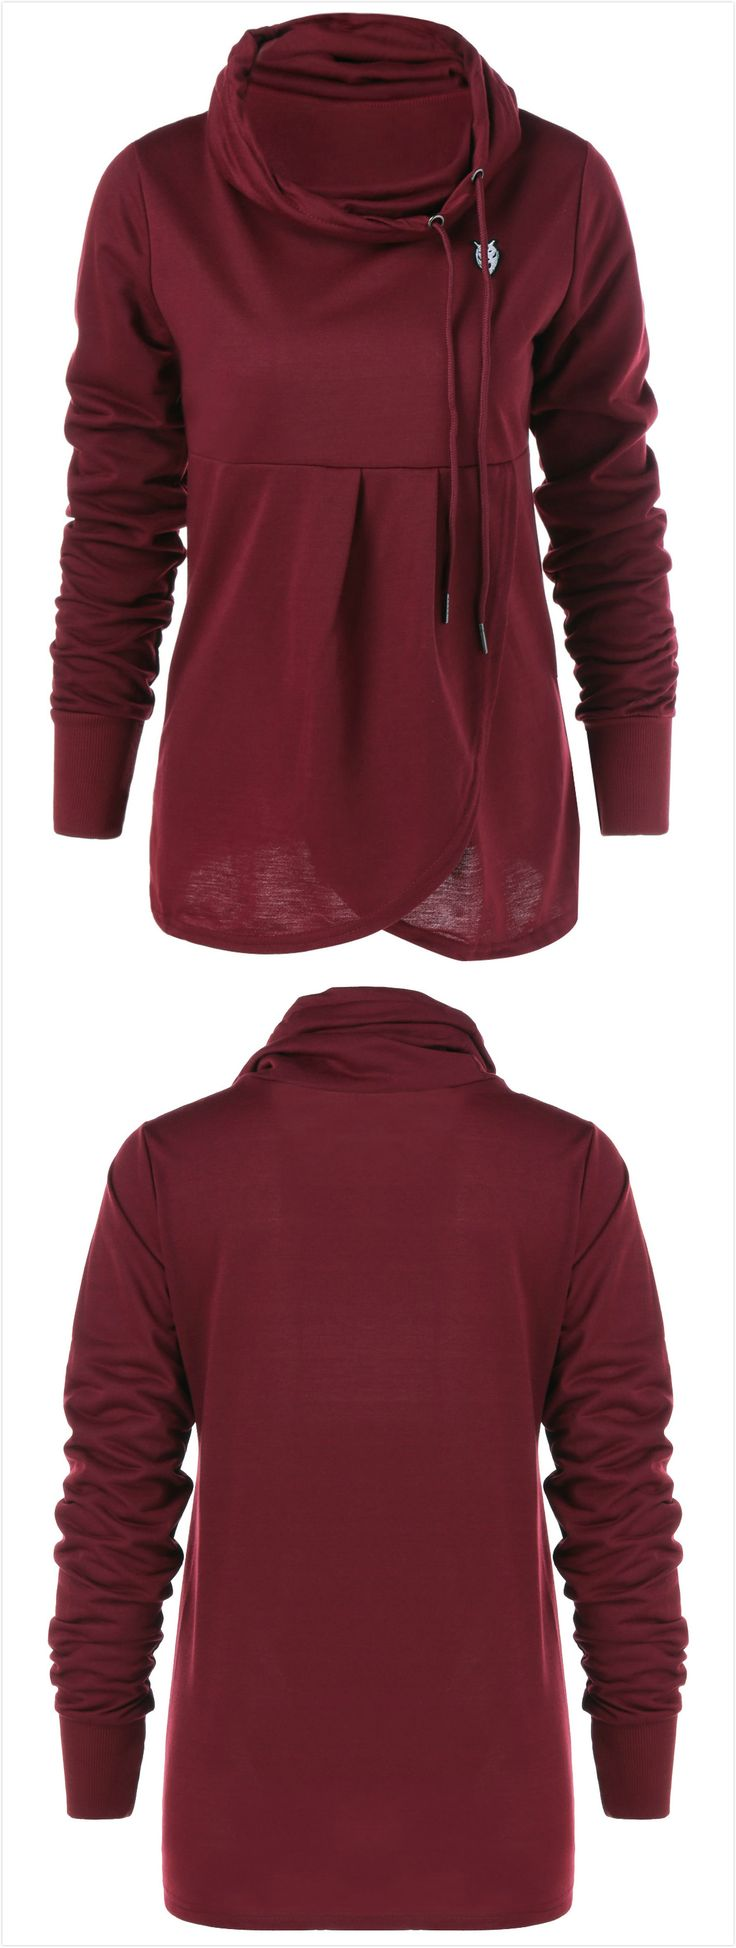 Pullover Cowl Collar Sweatshirt - Wine Red